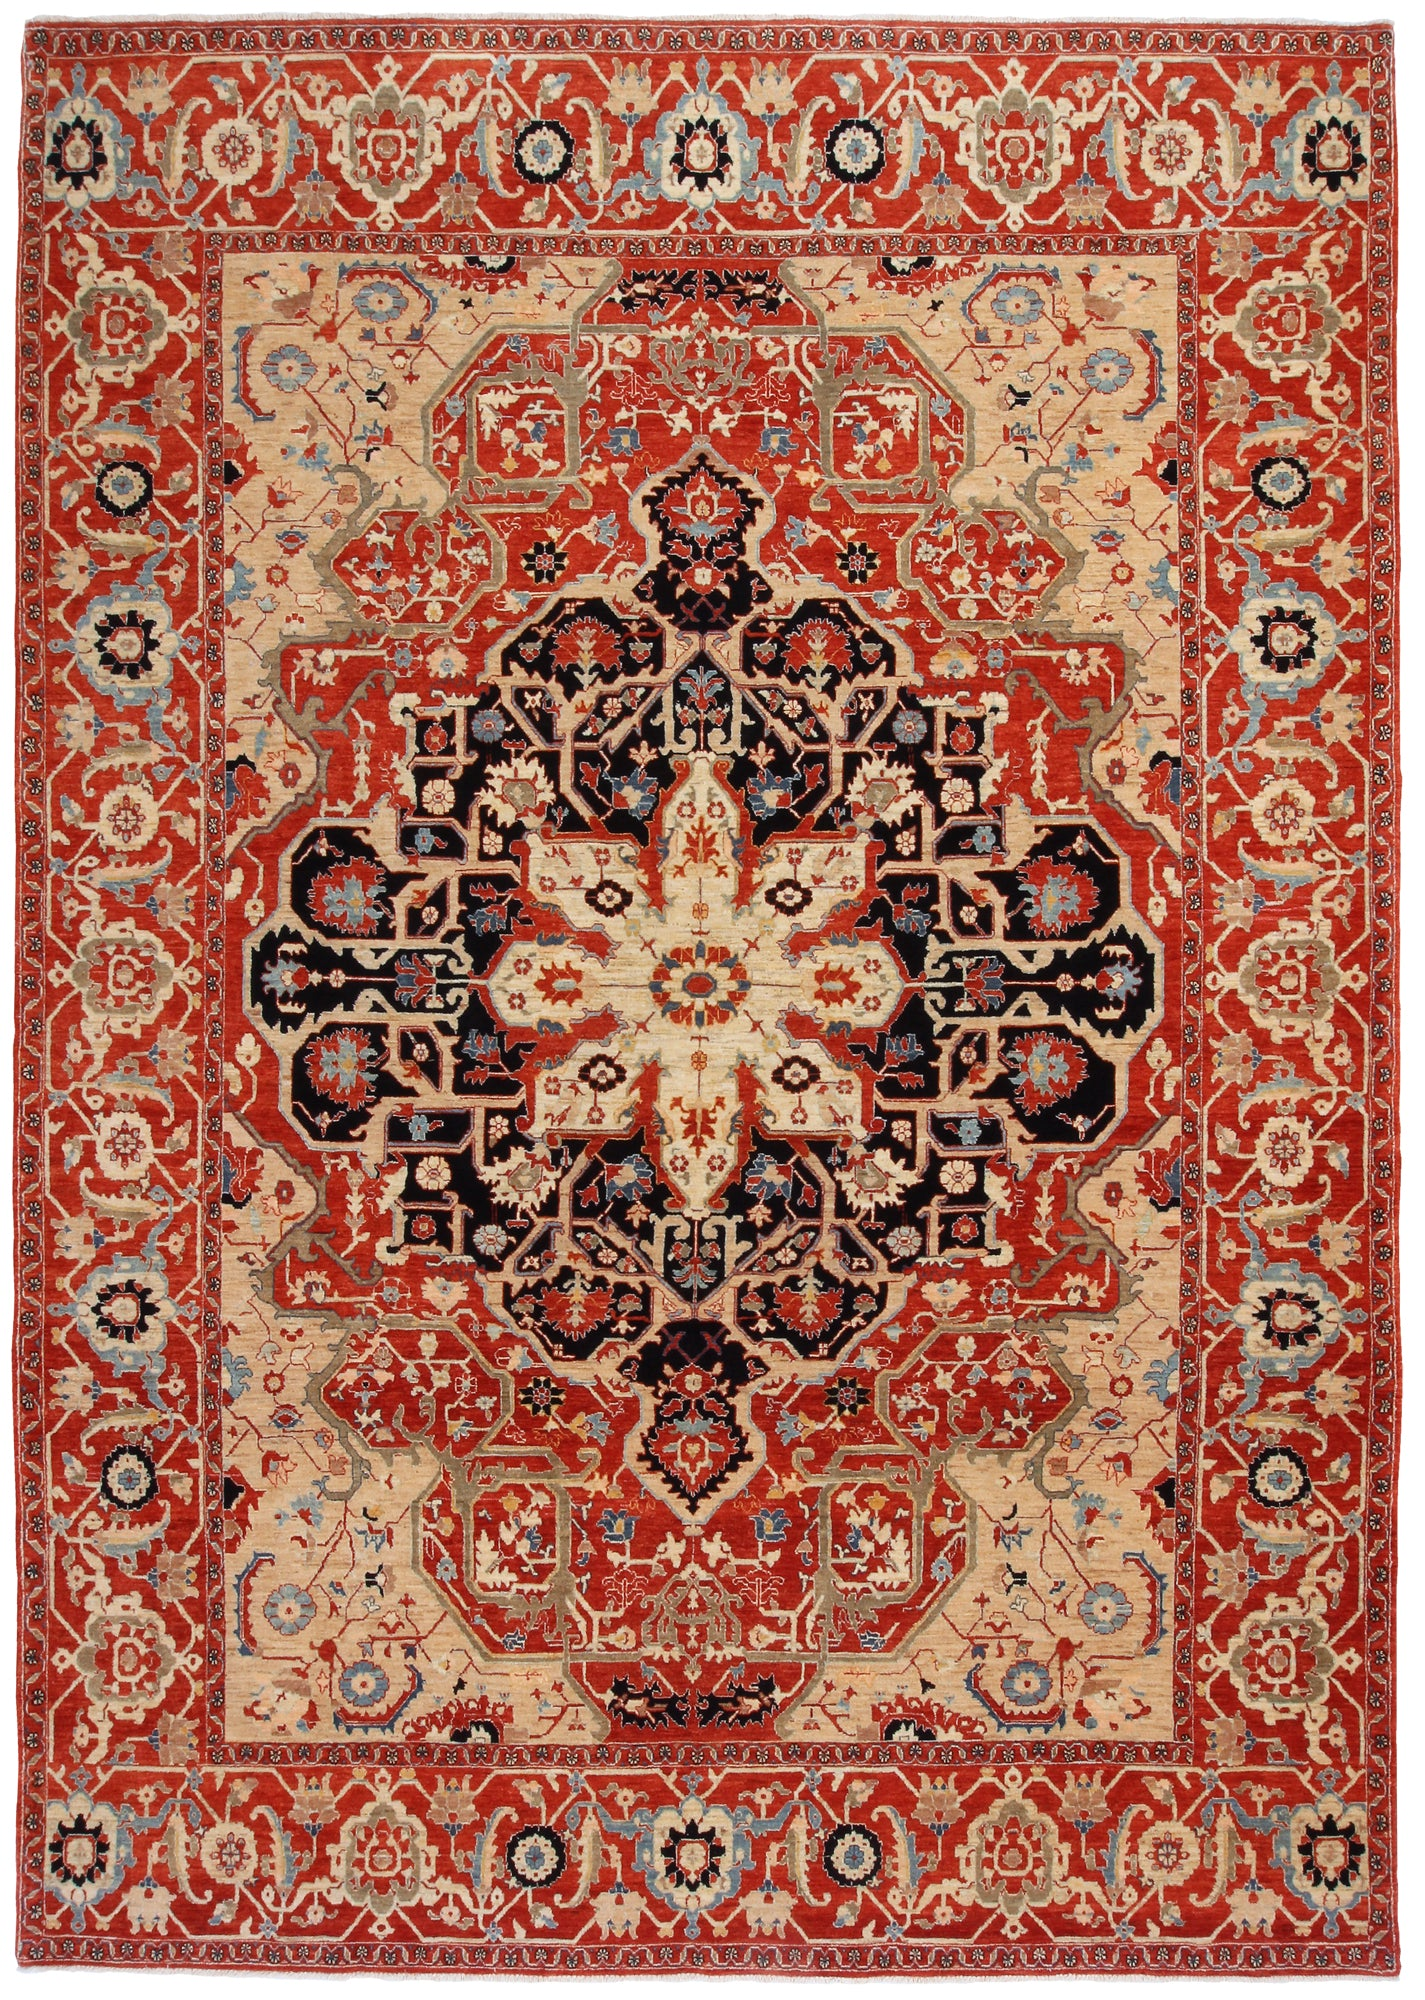 Heriz Design Rug India-Turco Persian Rug Company Inc.